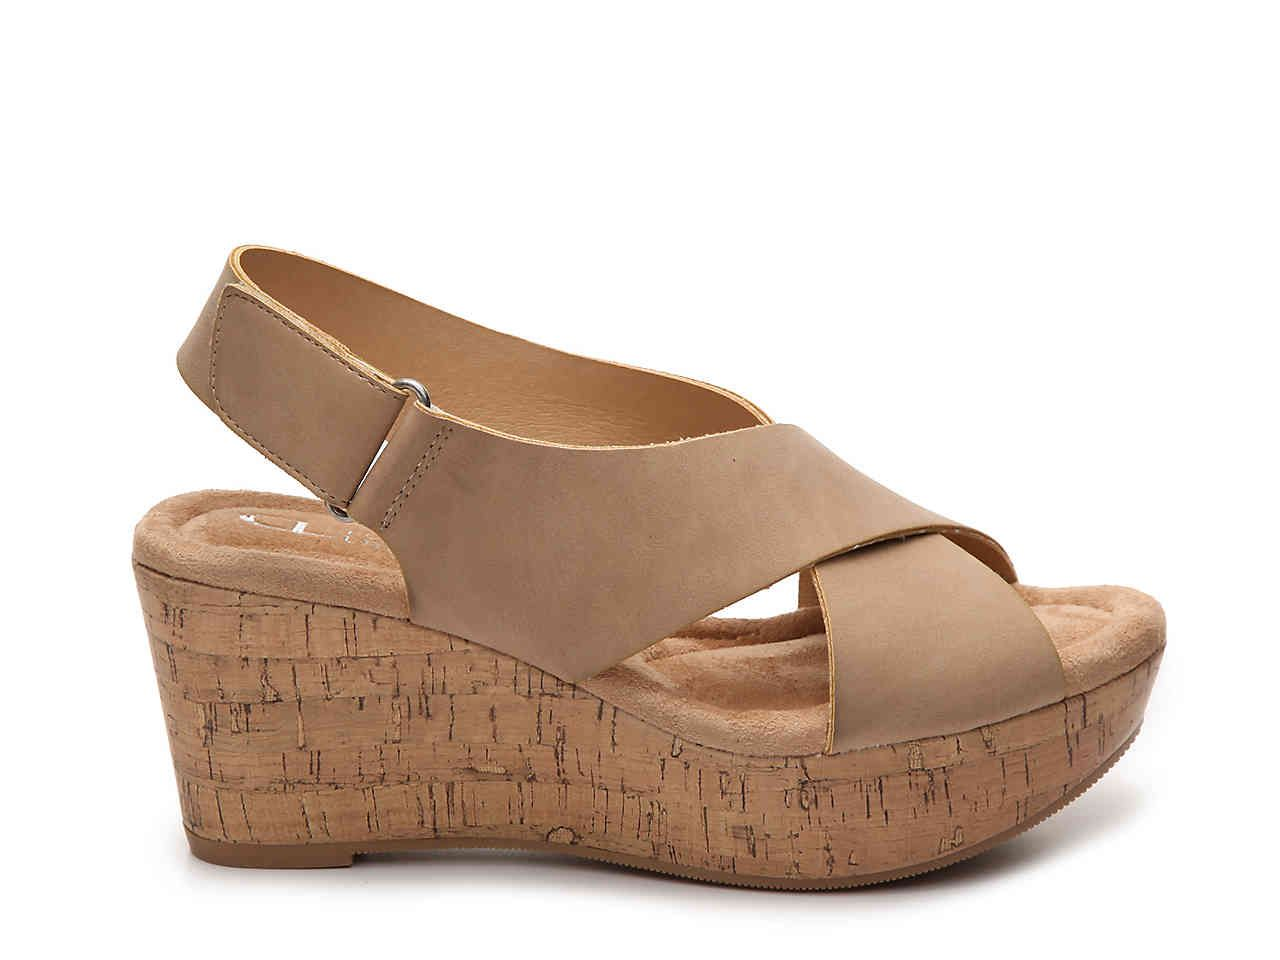 868caabe2 CL by Laundry Dream Girl Wedge Sandal Women s Shoes